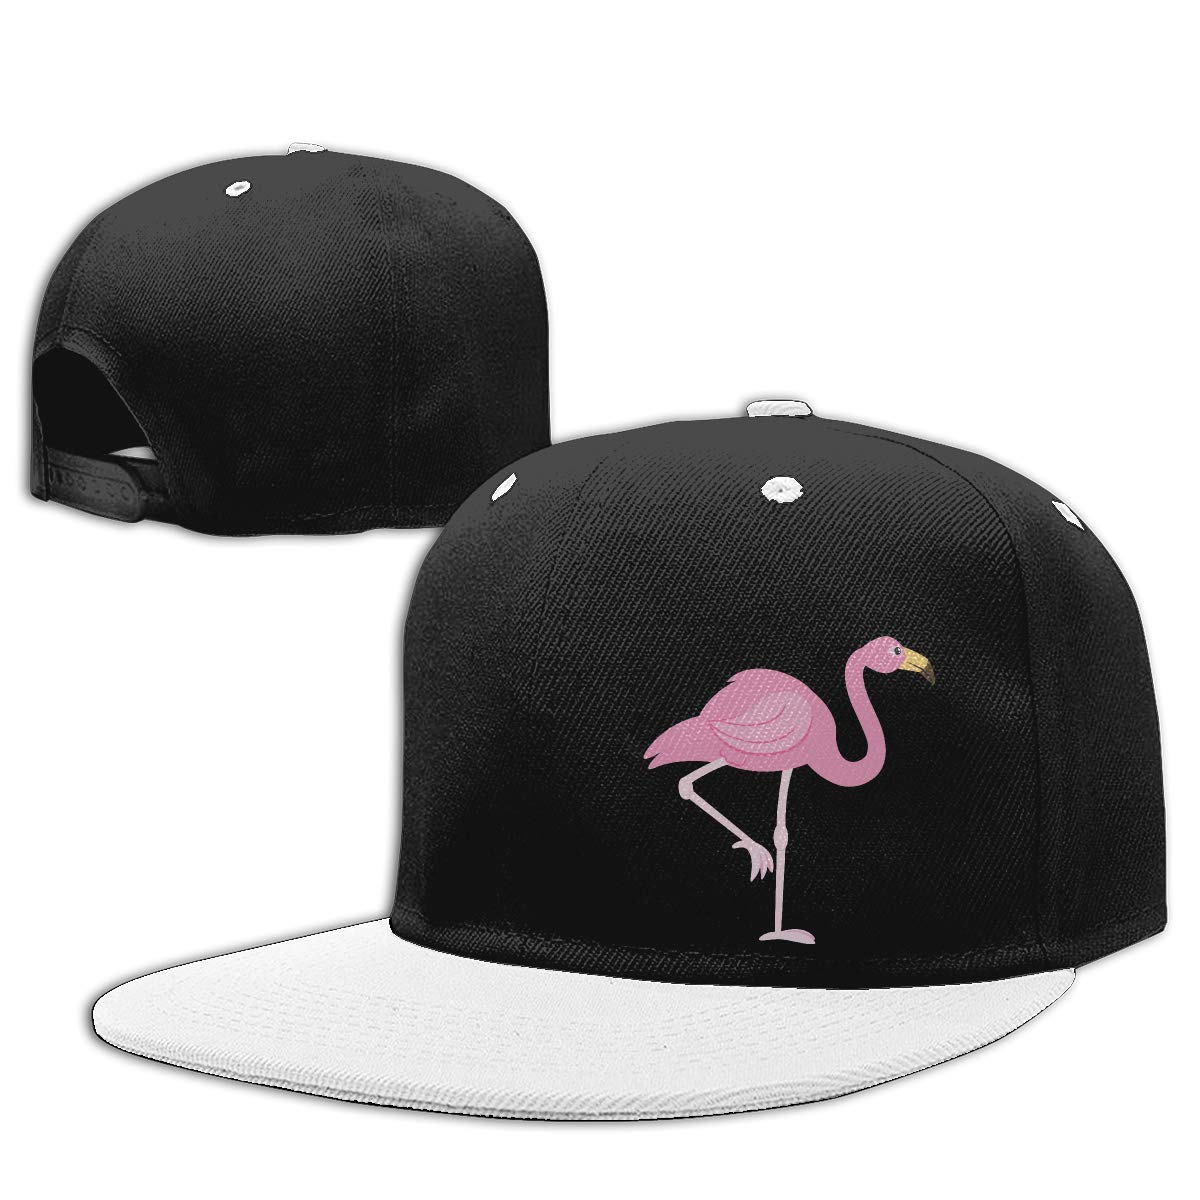 Flamingo Adjustable Flat Peaked Baseball Caps Women Men Plain Cap